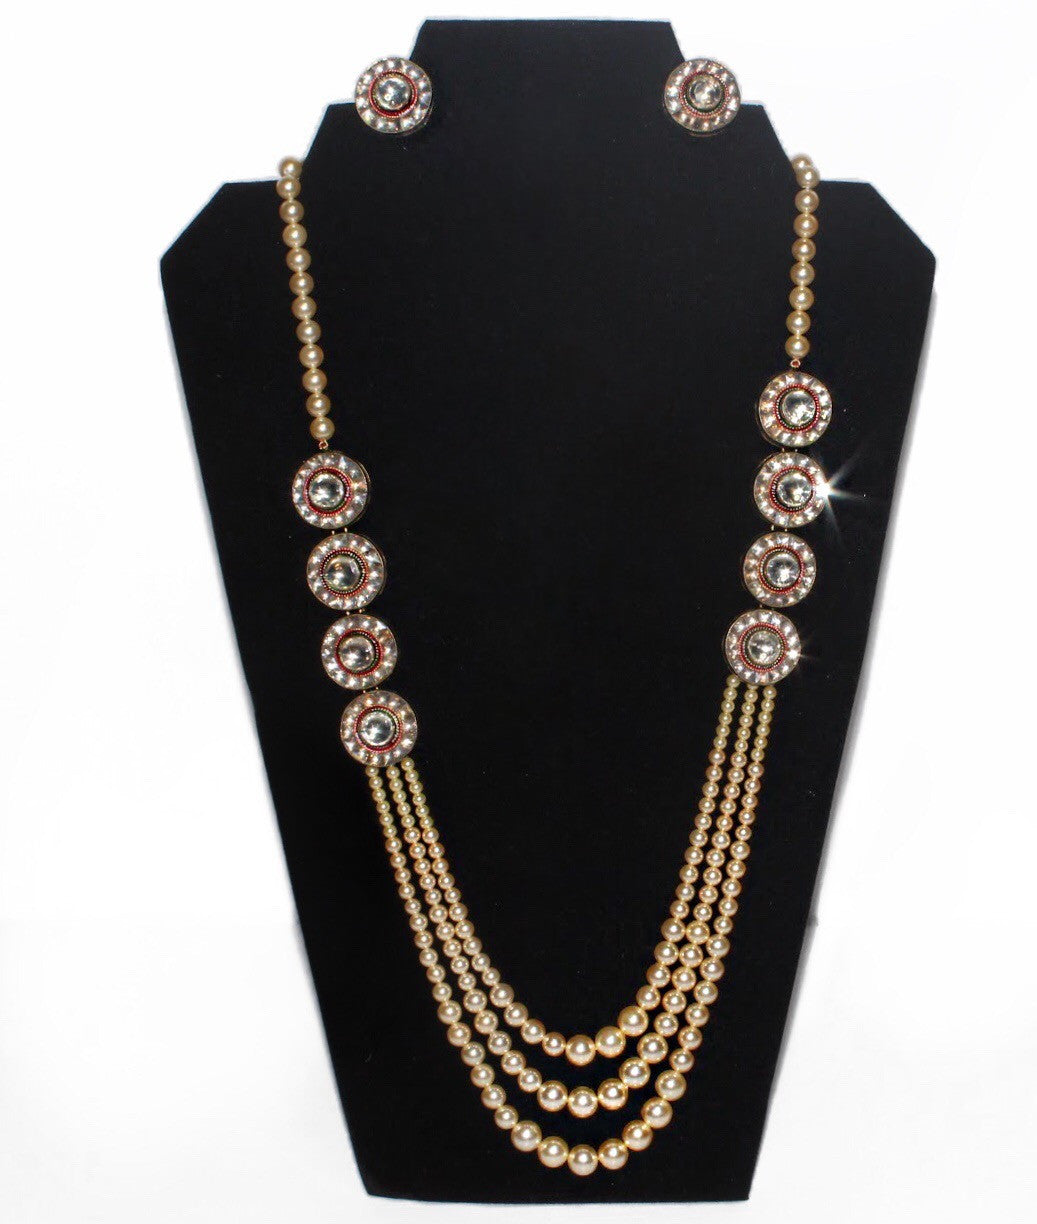 Pearl Necklace with Kundan embelishment